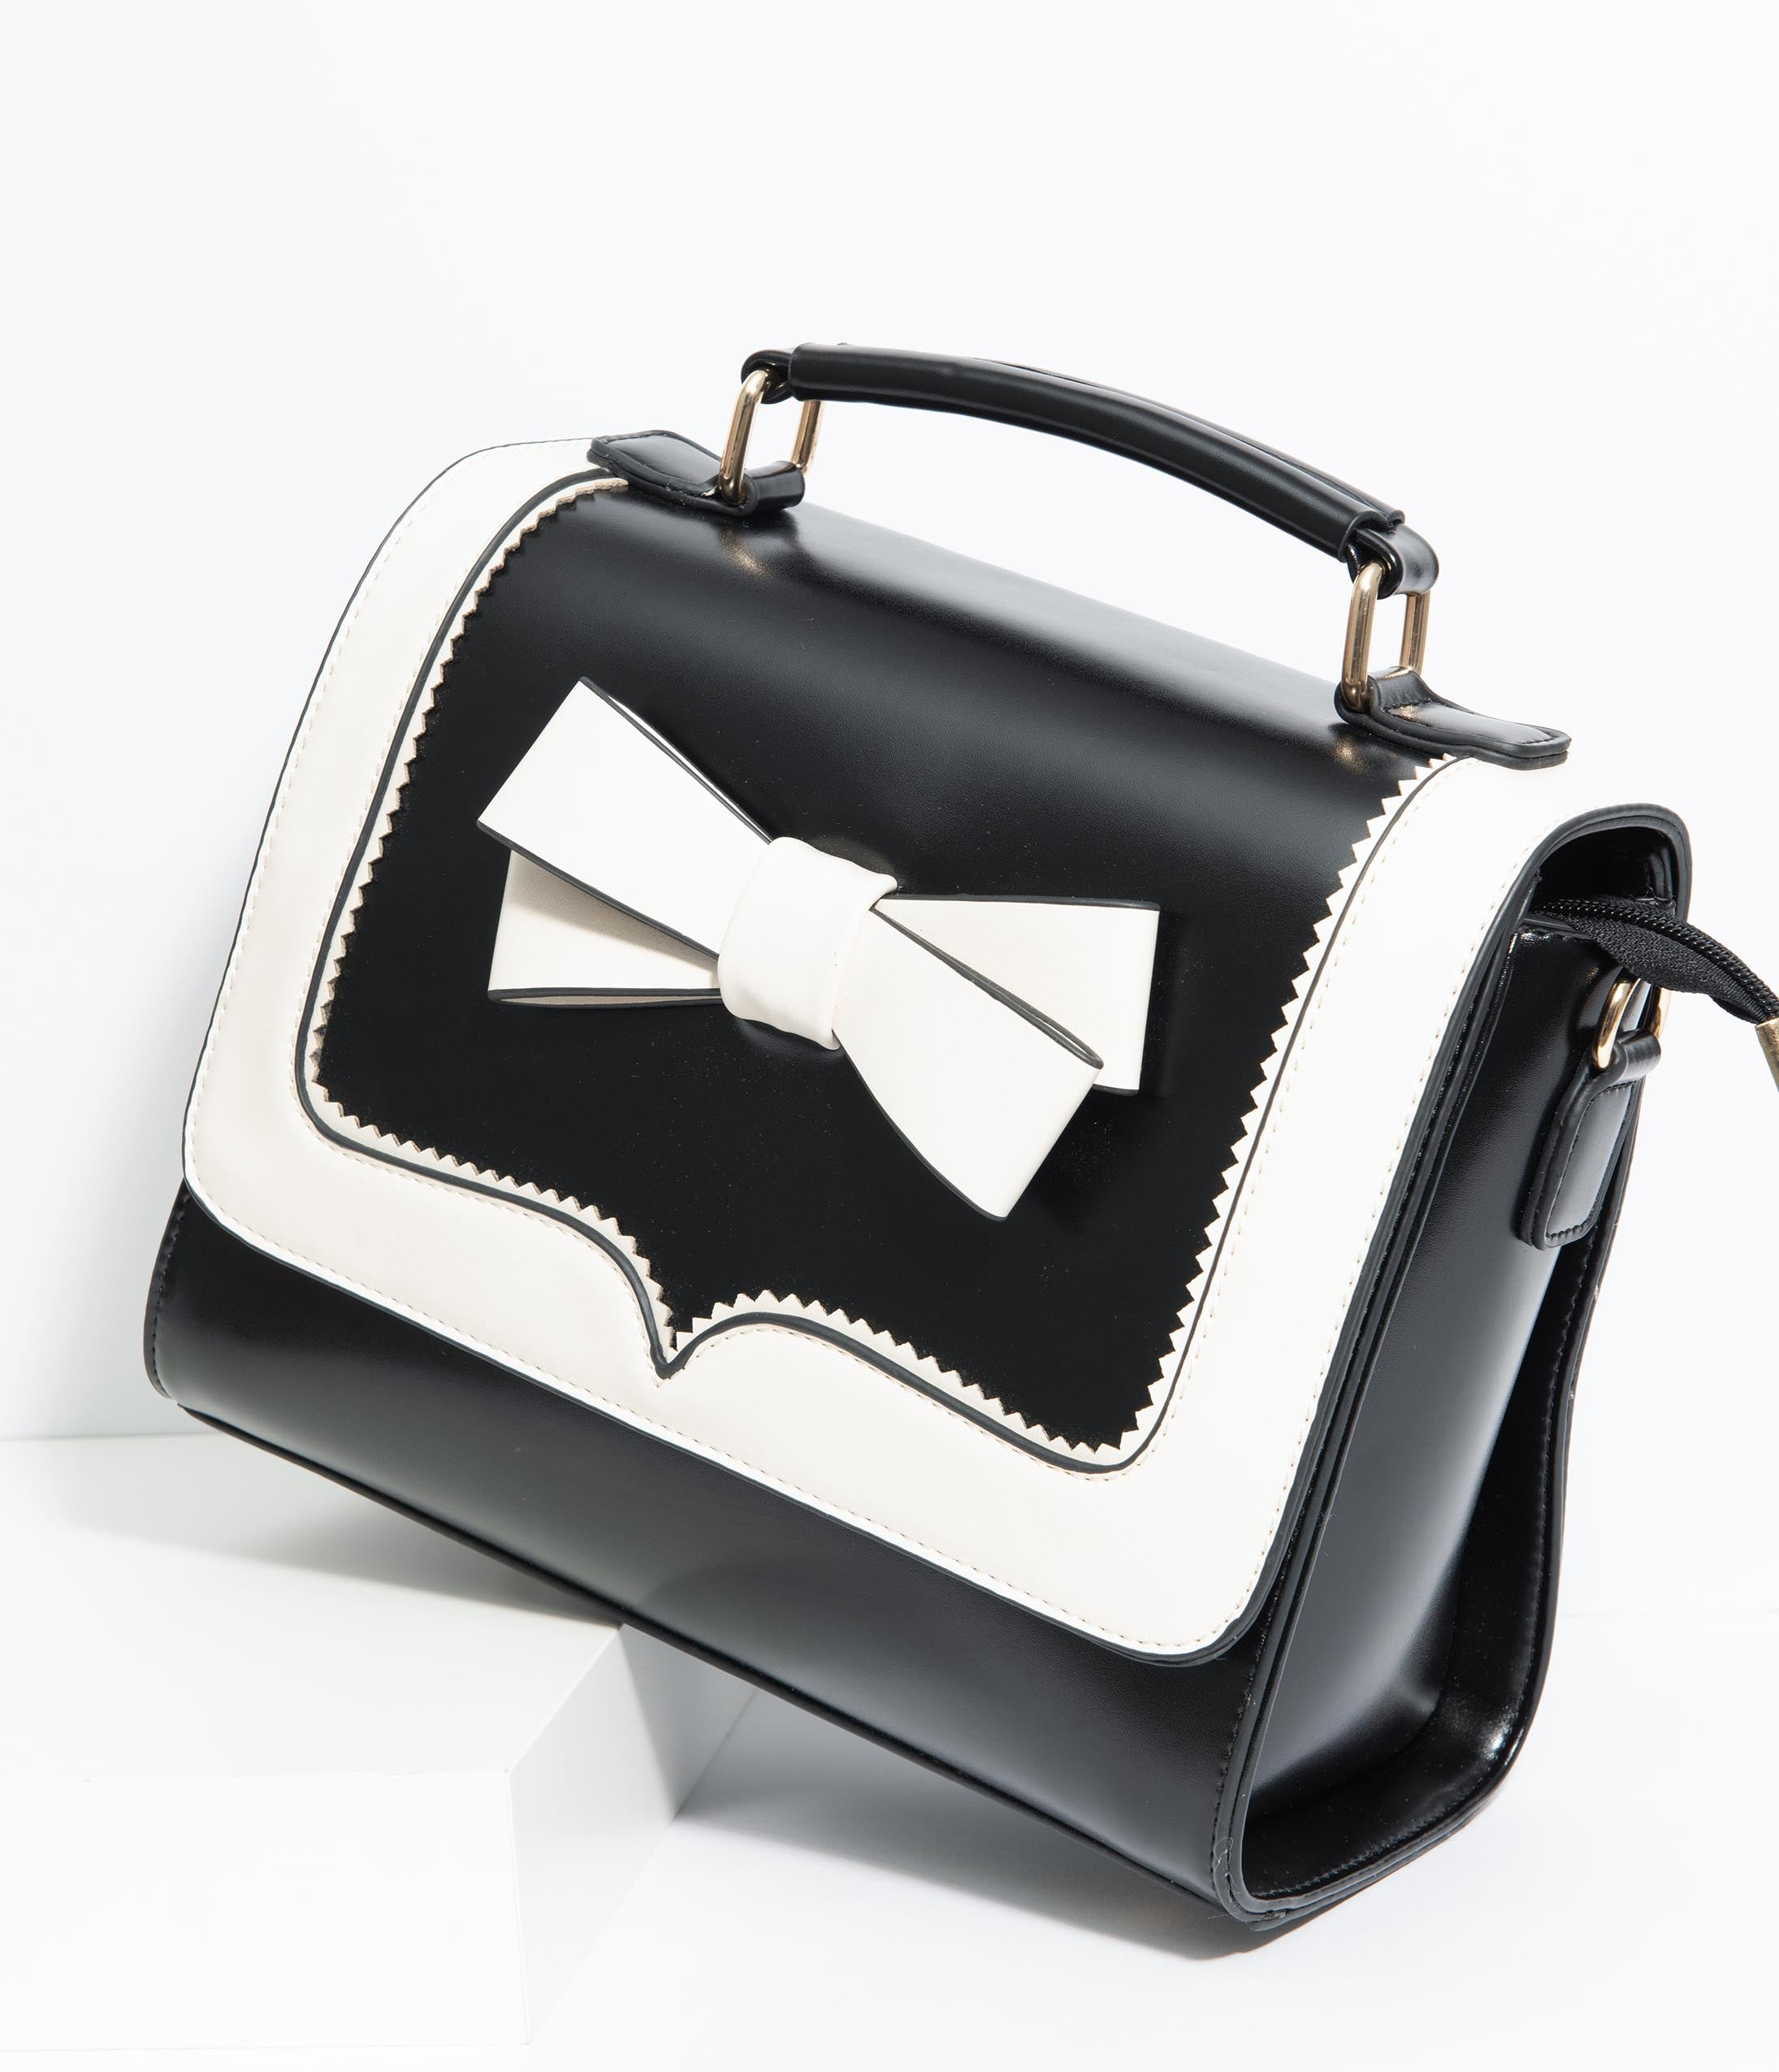 1950s Handbags, Purses, and Evening Bag Styles Black  White Bow Leatherette Purse $58.00 AT vintagedancer.com